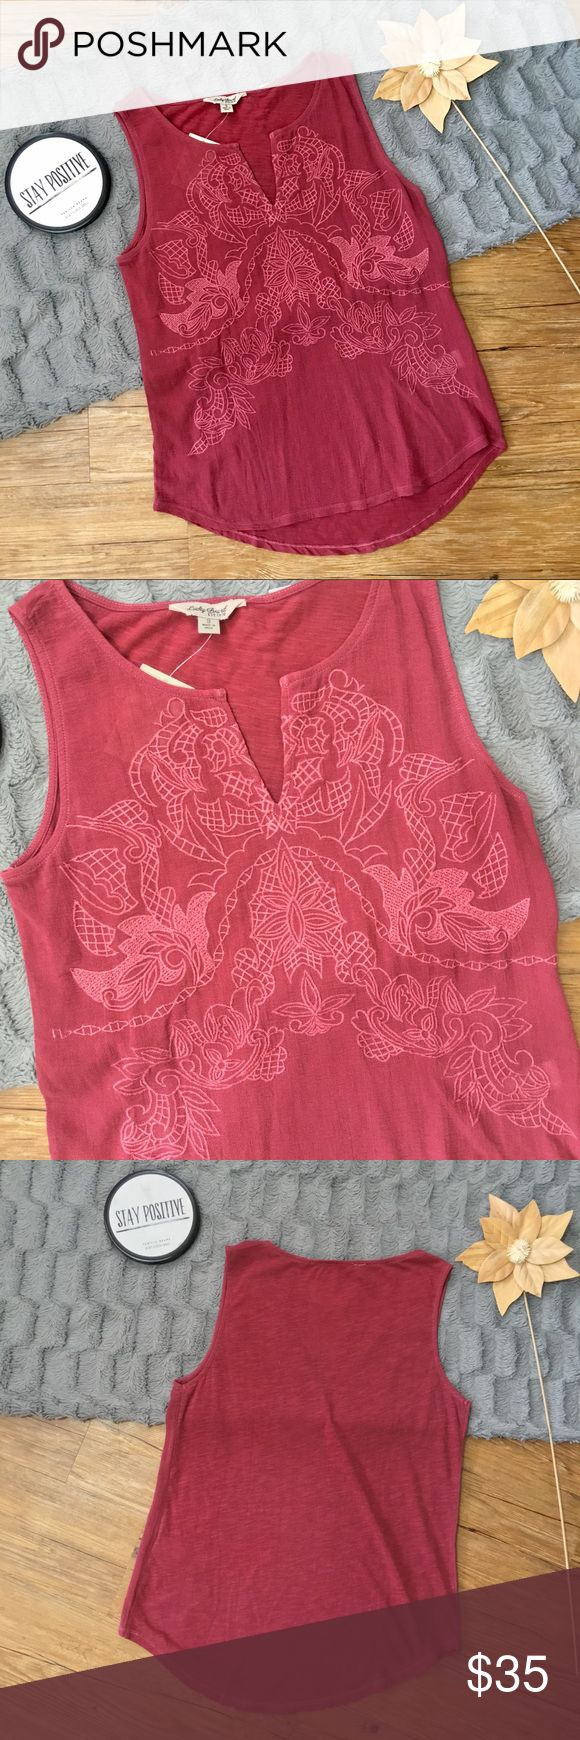 NWT Lucky Brand Top Conditions: Brand new with tags. Lucky Brand Tops Blouses